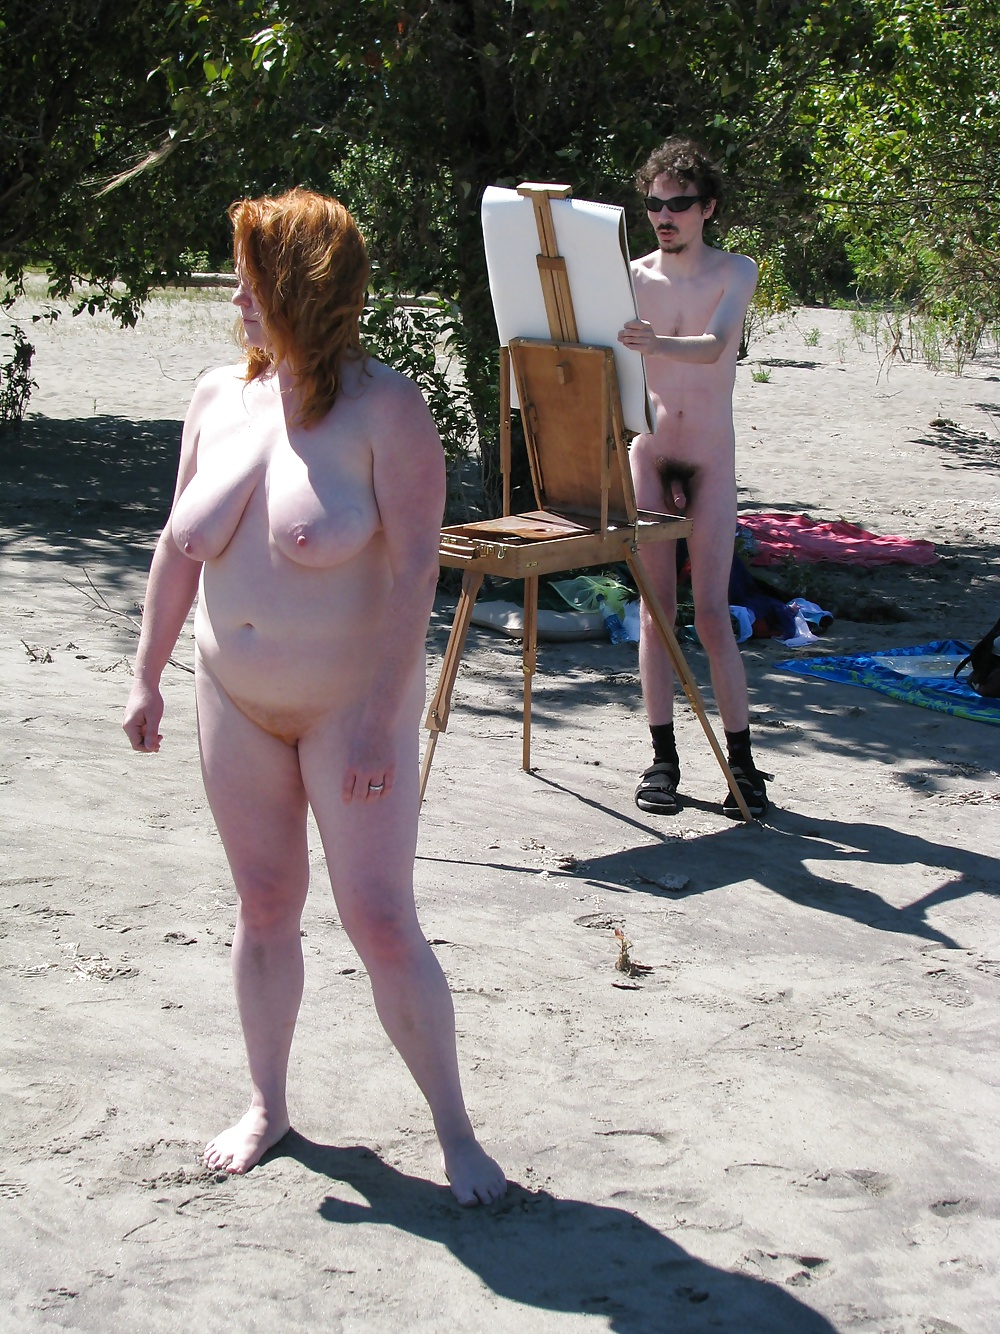 chubby-gymnast-nudist